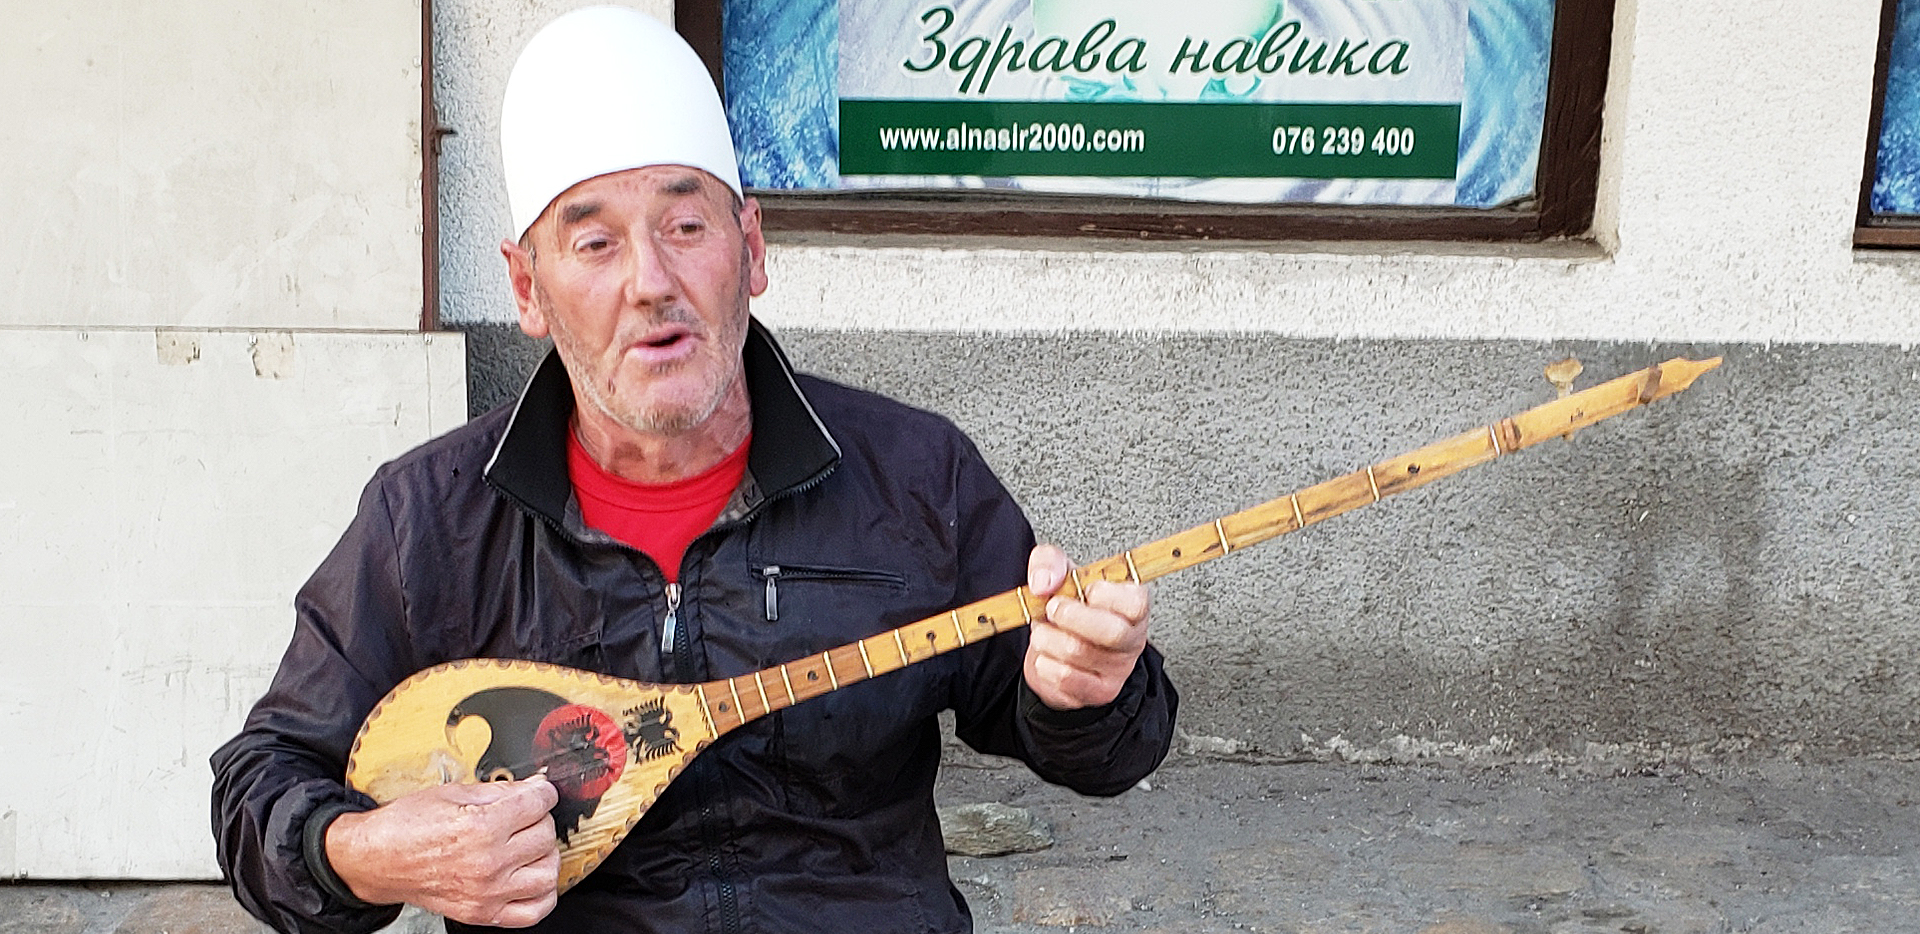 Street Musician Playing A Traditional Tambura